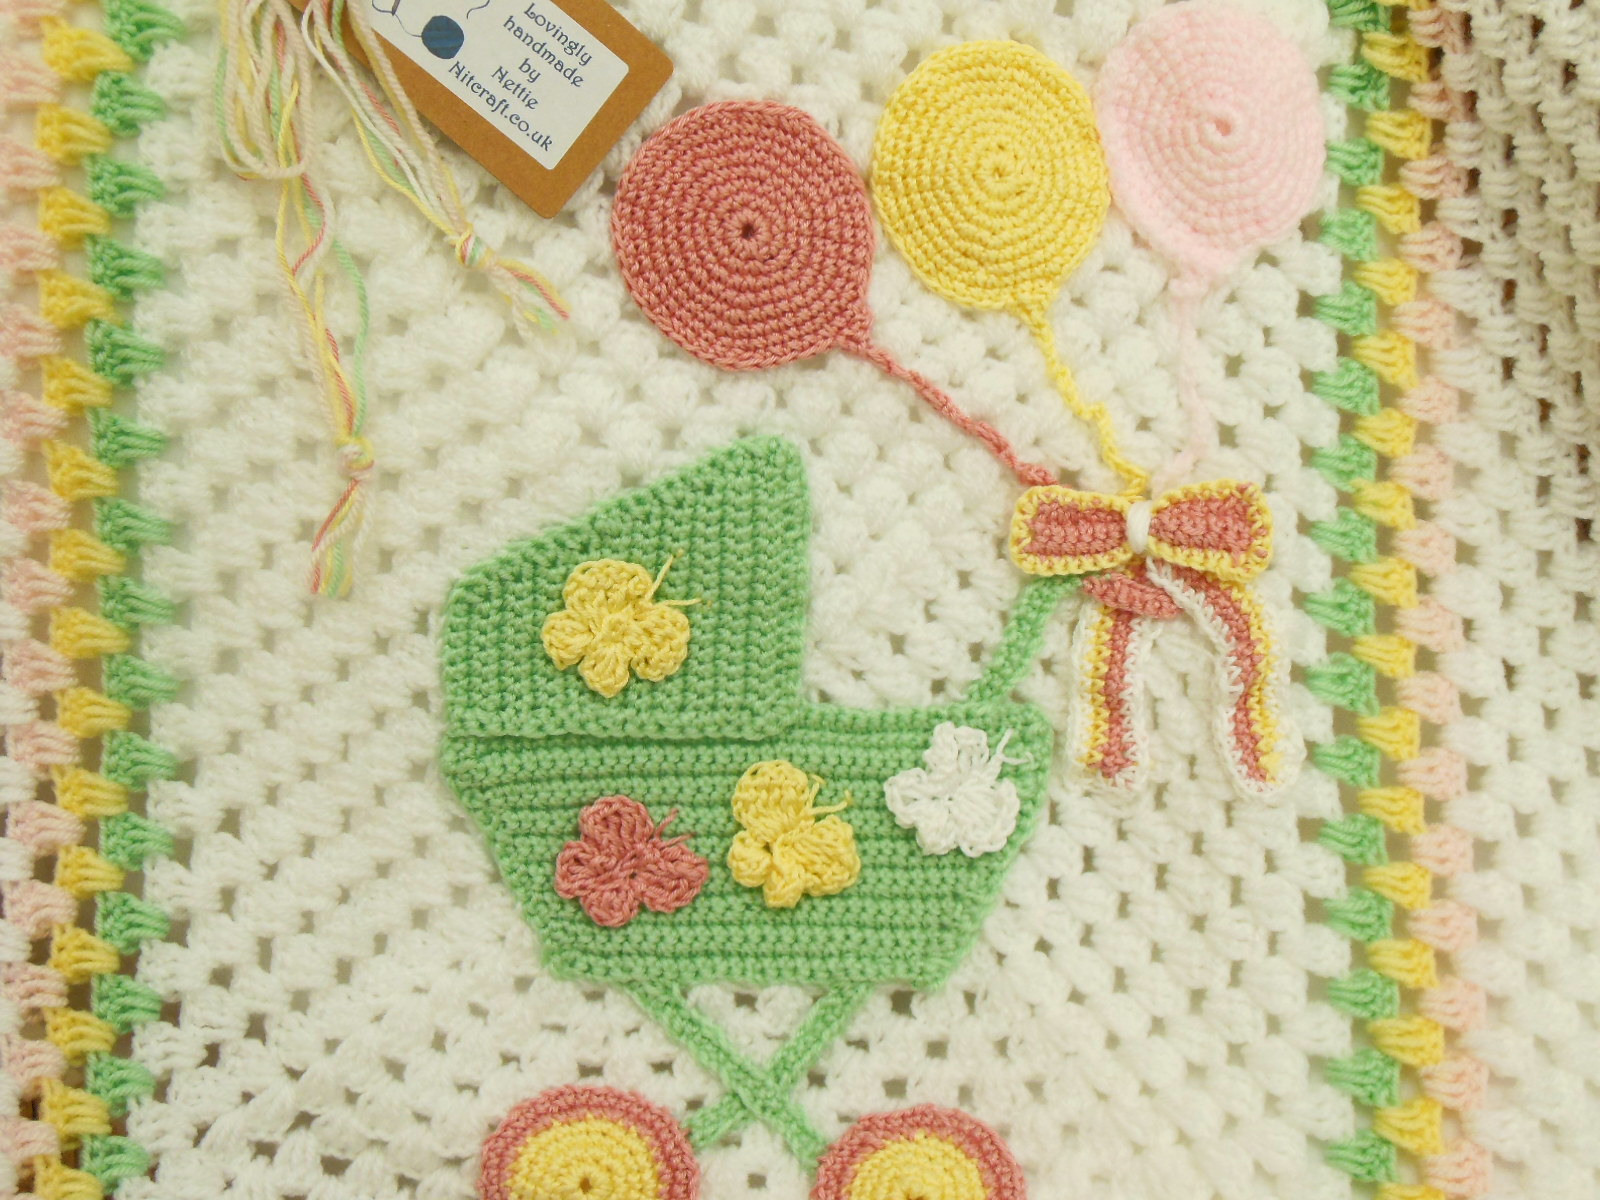 Crochet Baby Blanket Unique Crochet Baby Blanket Picture butterfly Pram Of Great 49 Pictures Crochet Baby Blanket